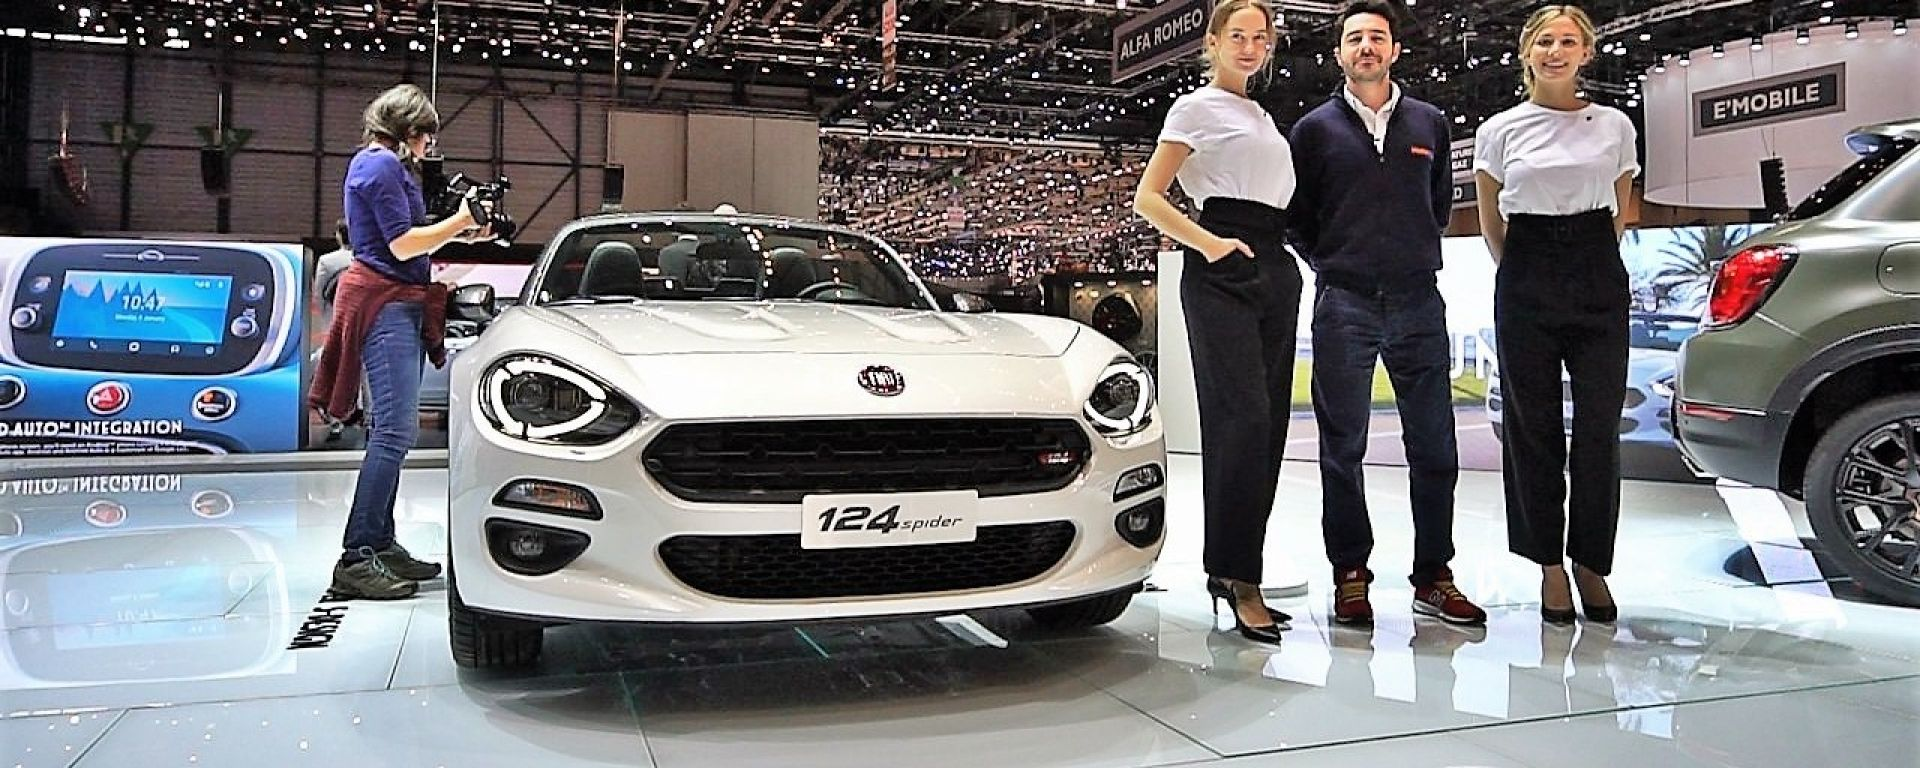 Fiat 124 Spider S-Design in video dal Salone di Ginevra 2018